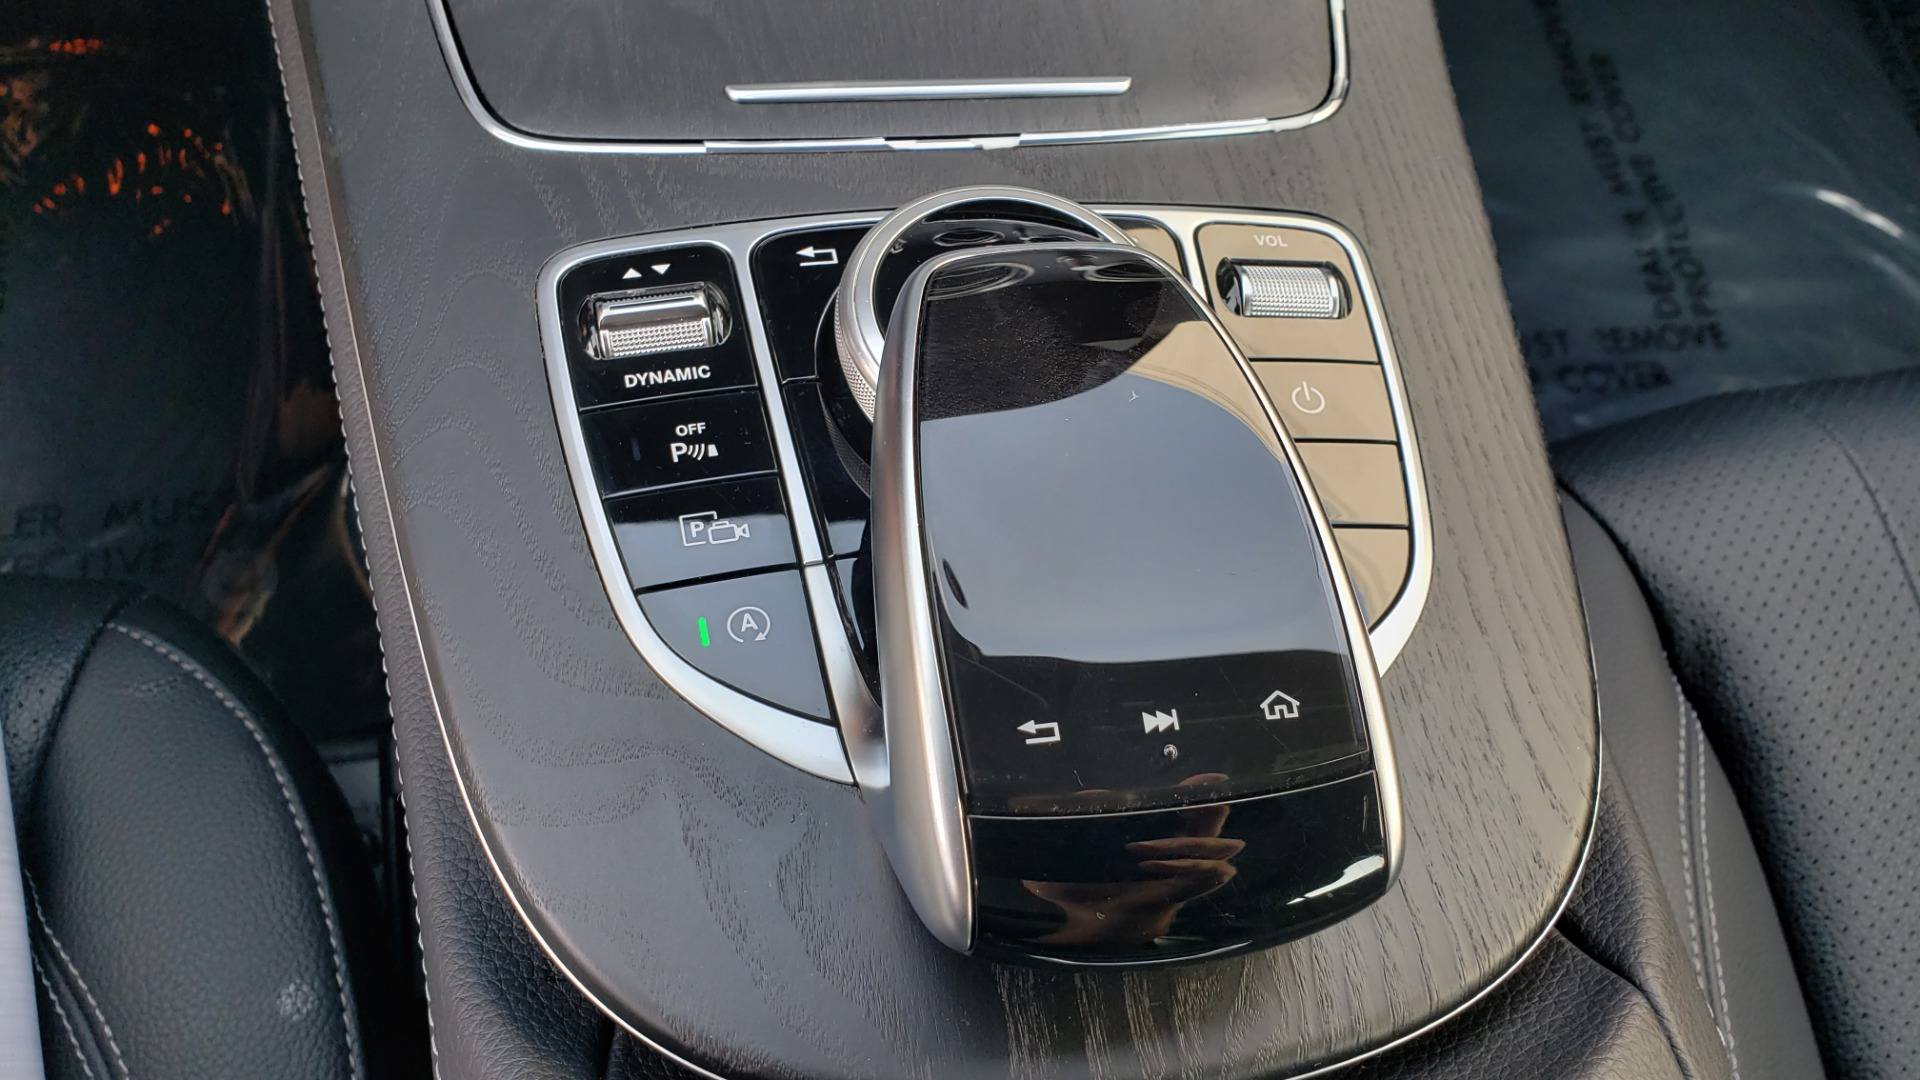 Used 2018 Mercedes-Benz E-CLASS E 300 4MATIC / PREMIUM / NAV / PANO-ROOF / BURMESTER / REARVIEW for sale $41,995 at Formula Imports in Charlotte NC 28227 47